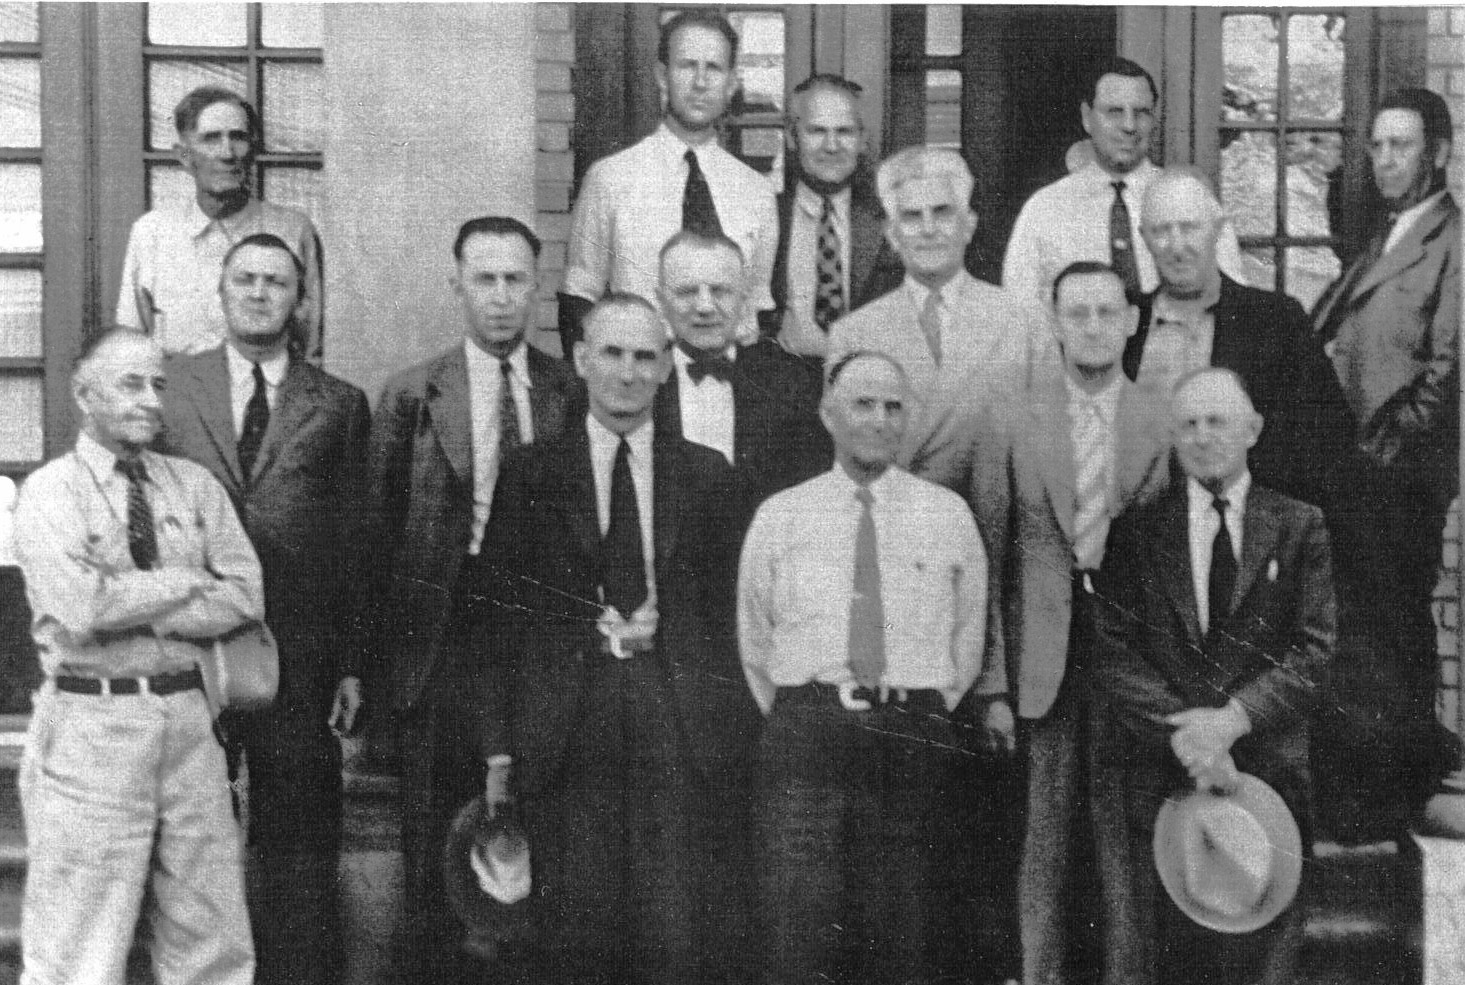 Charter Members of the Rotary Club #2358, May 25, 1926